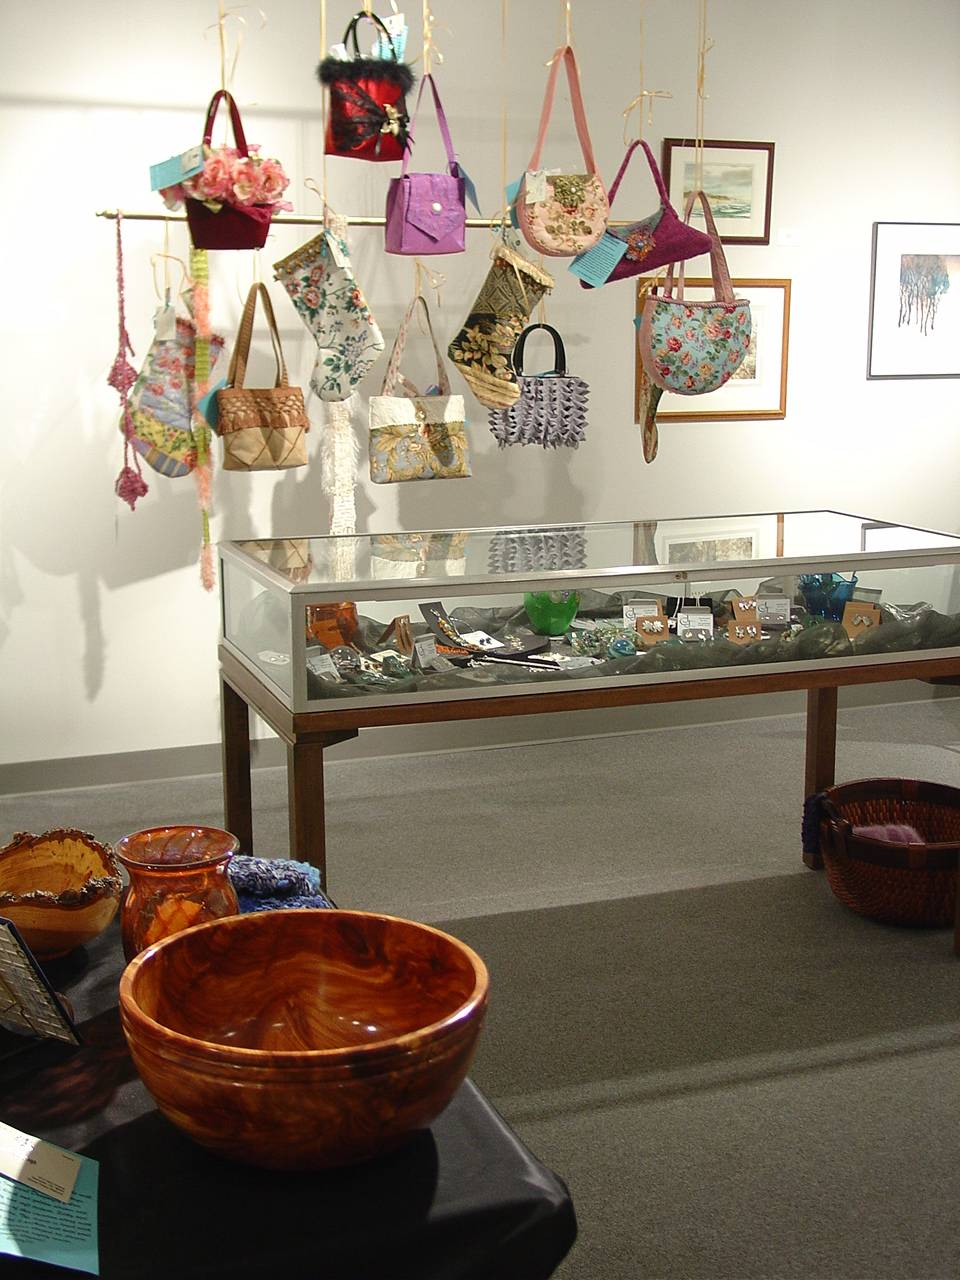 Handmade purses and bowls on display at the gallery